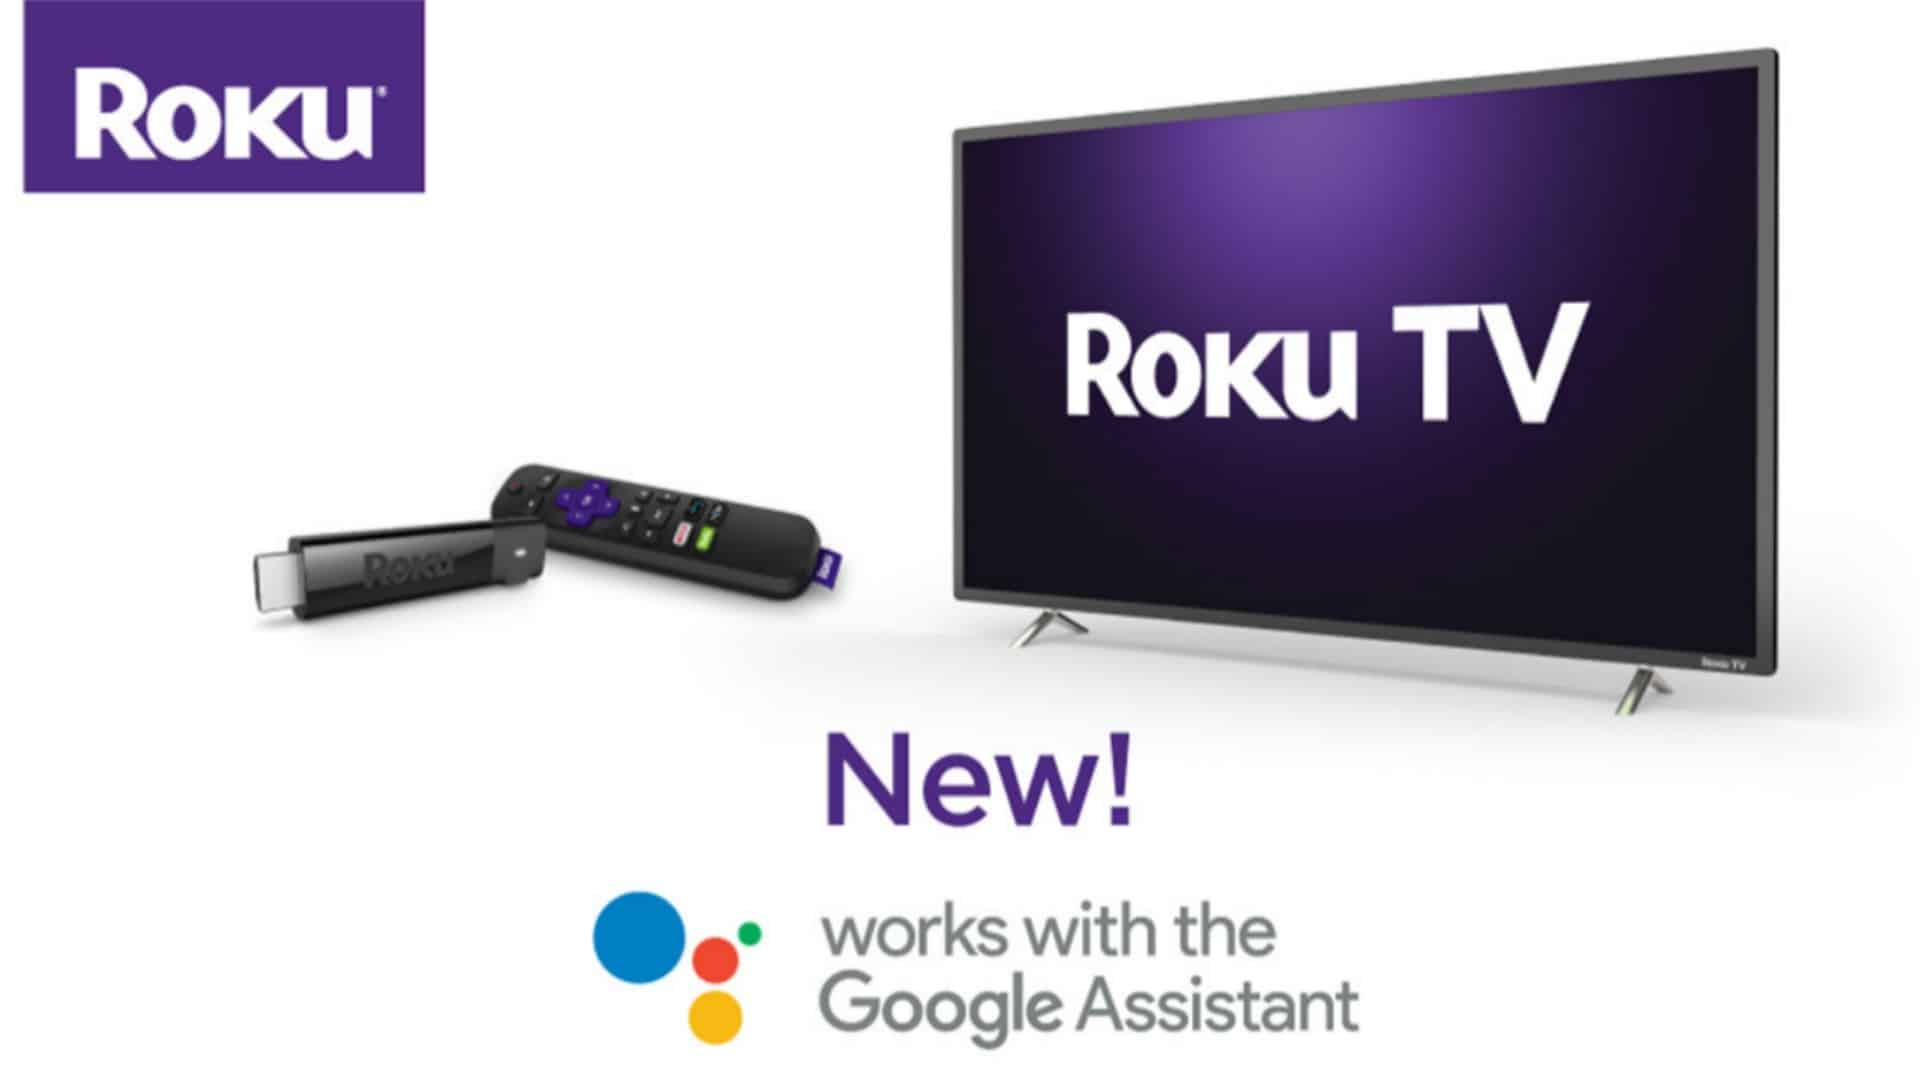 Google Assistant on Roku Press Image